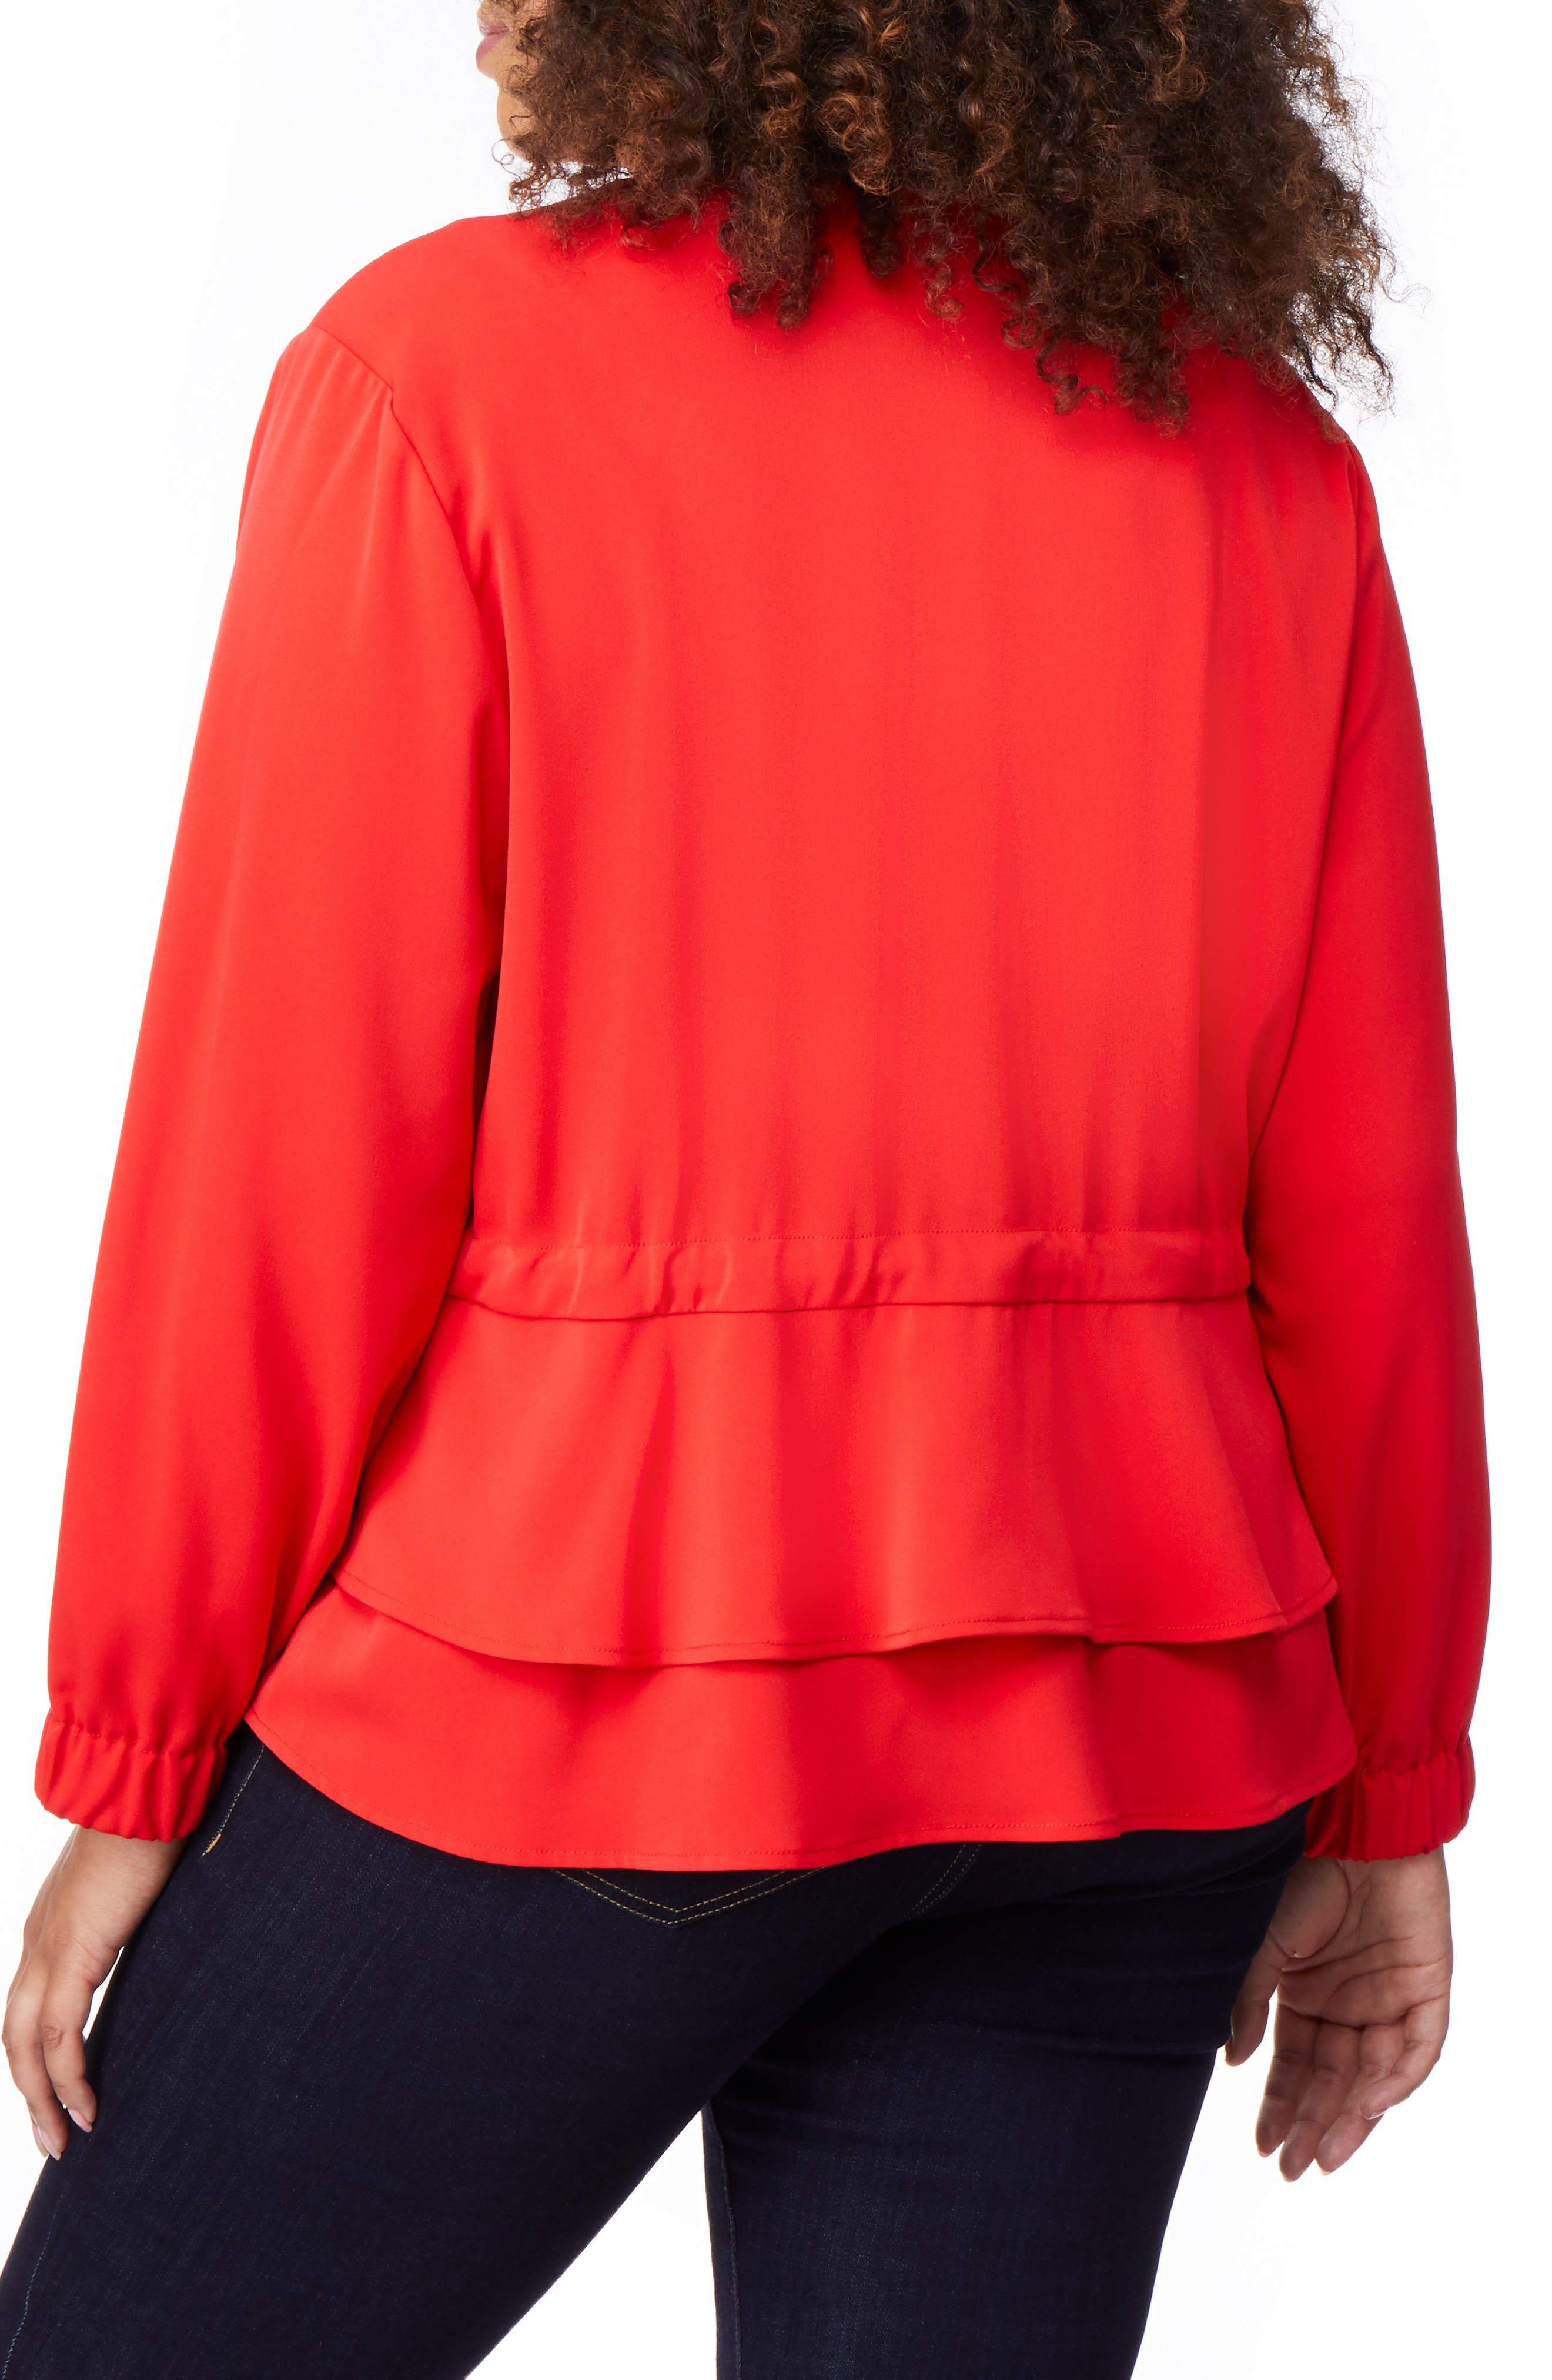 Tiered Peplum Jacket,                             Alternate thumbnail 2, color,                             FIERY RED